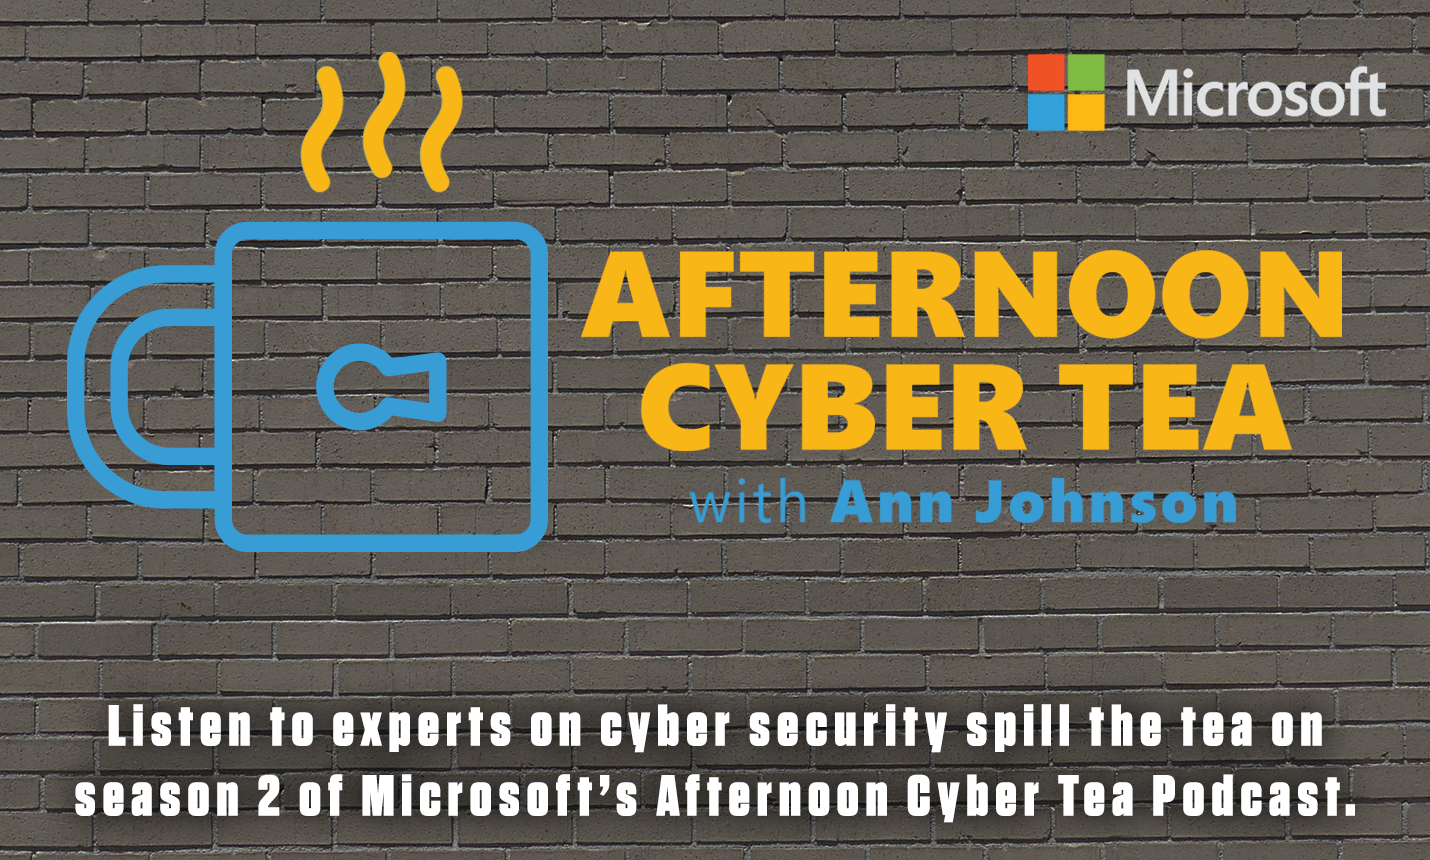 Afternoon Cyber Tea